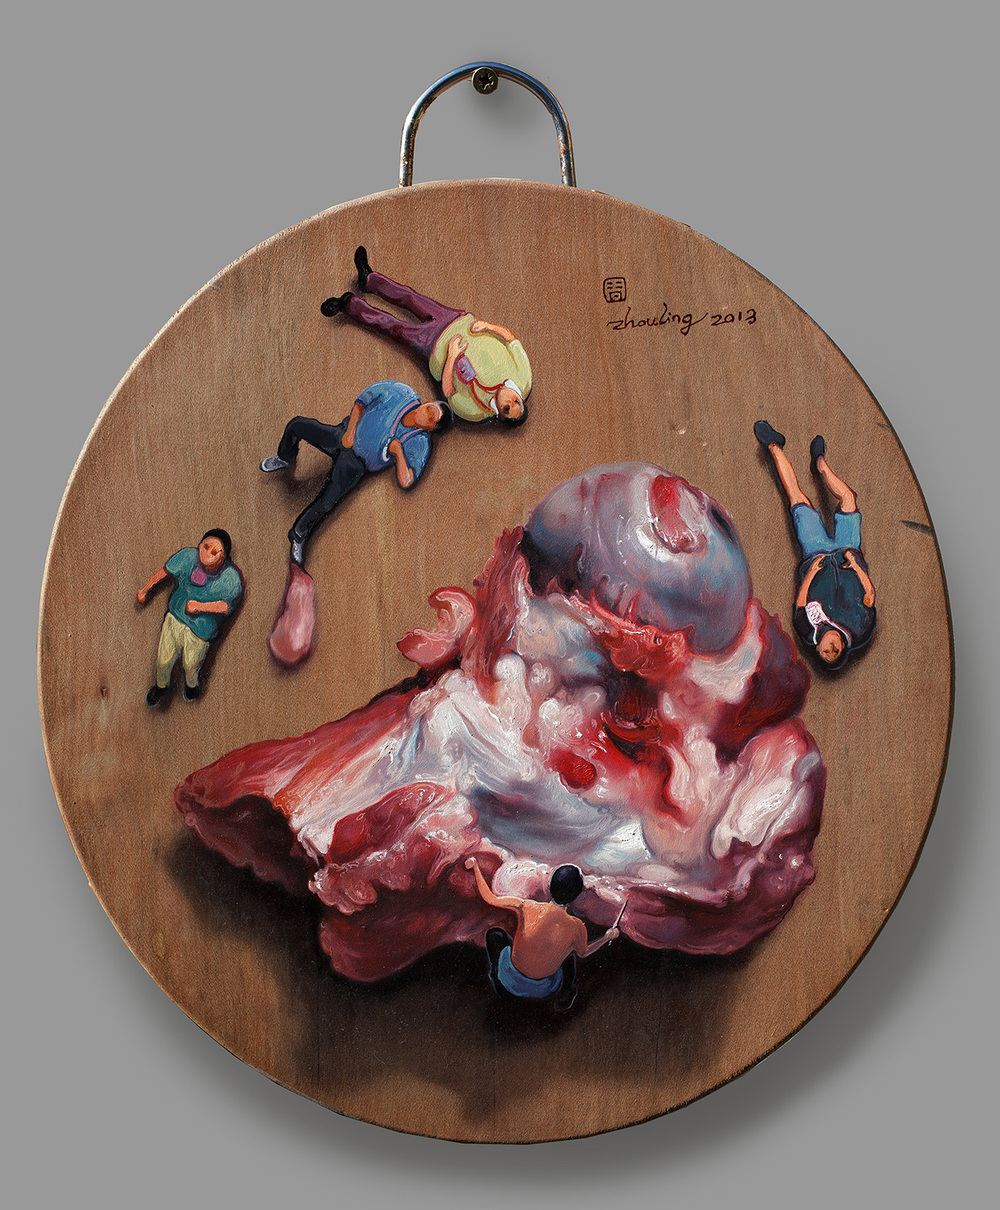 Zhou Jinhua 周金华, Chopping Block No.15 砧板 No.15, 2013, Oil on chop board 木板油画